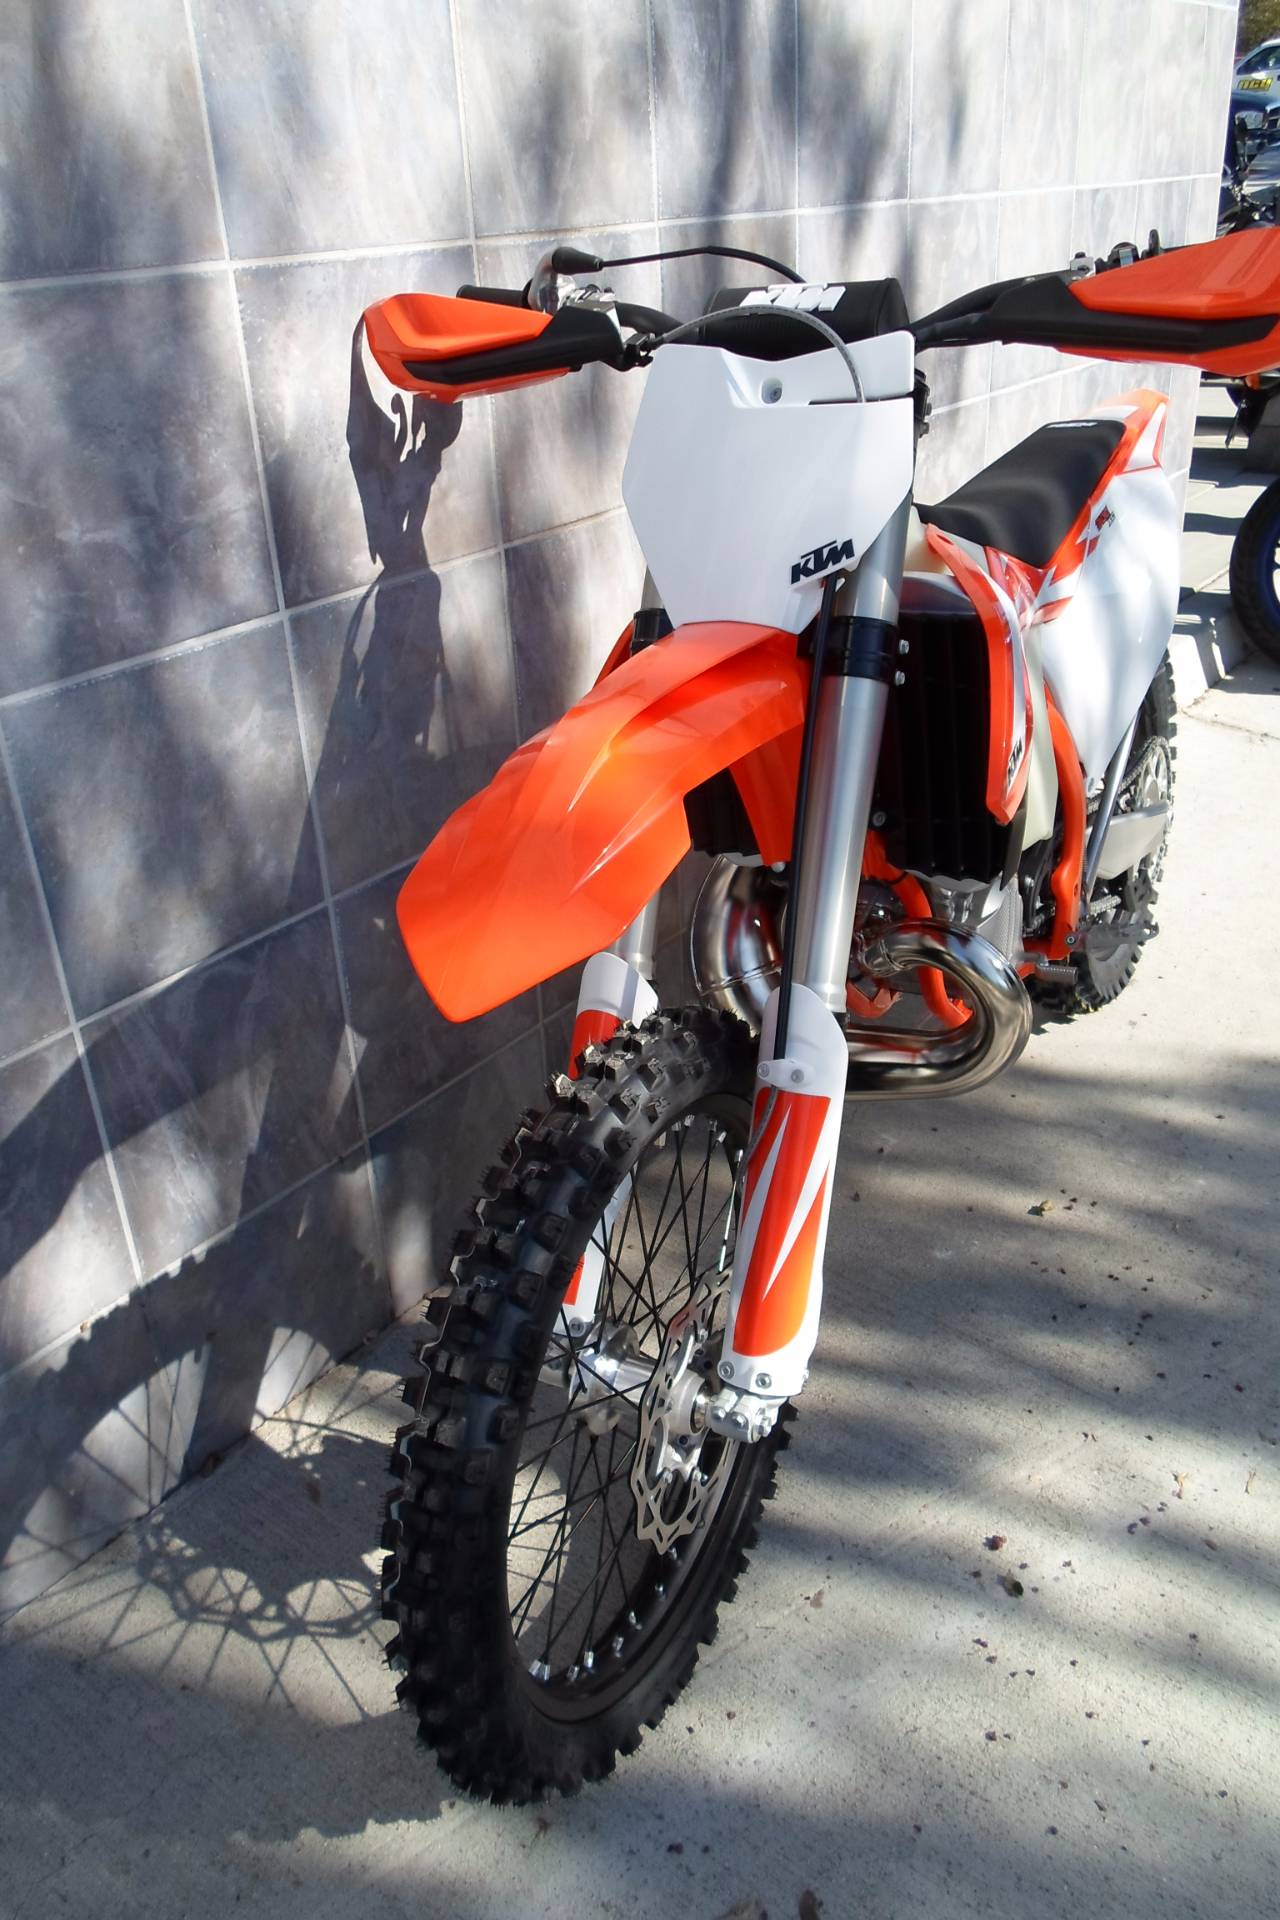 2018 ktm 300 xc. fine 2018 2018 ktm 300 xc in san marcos california throughout ktm xc w